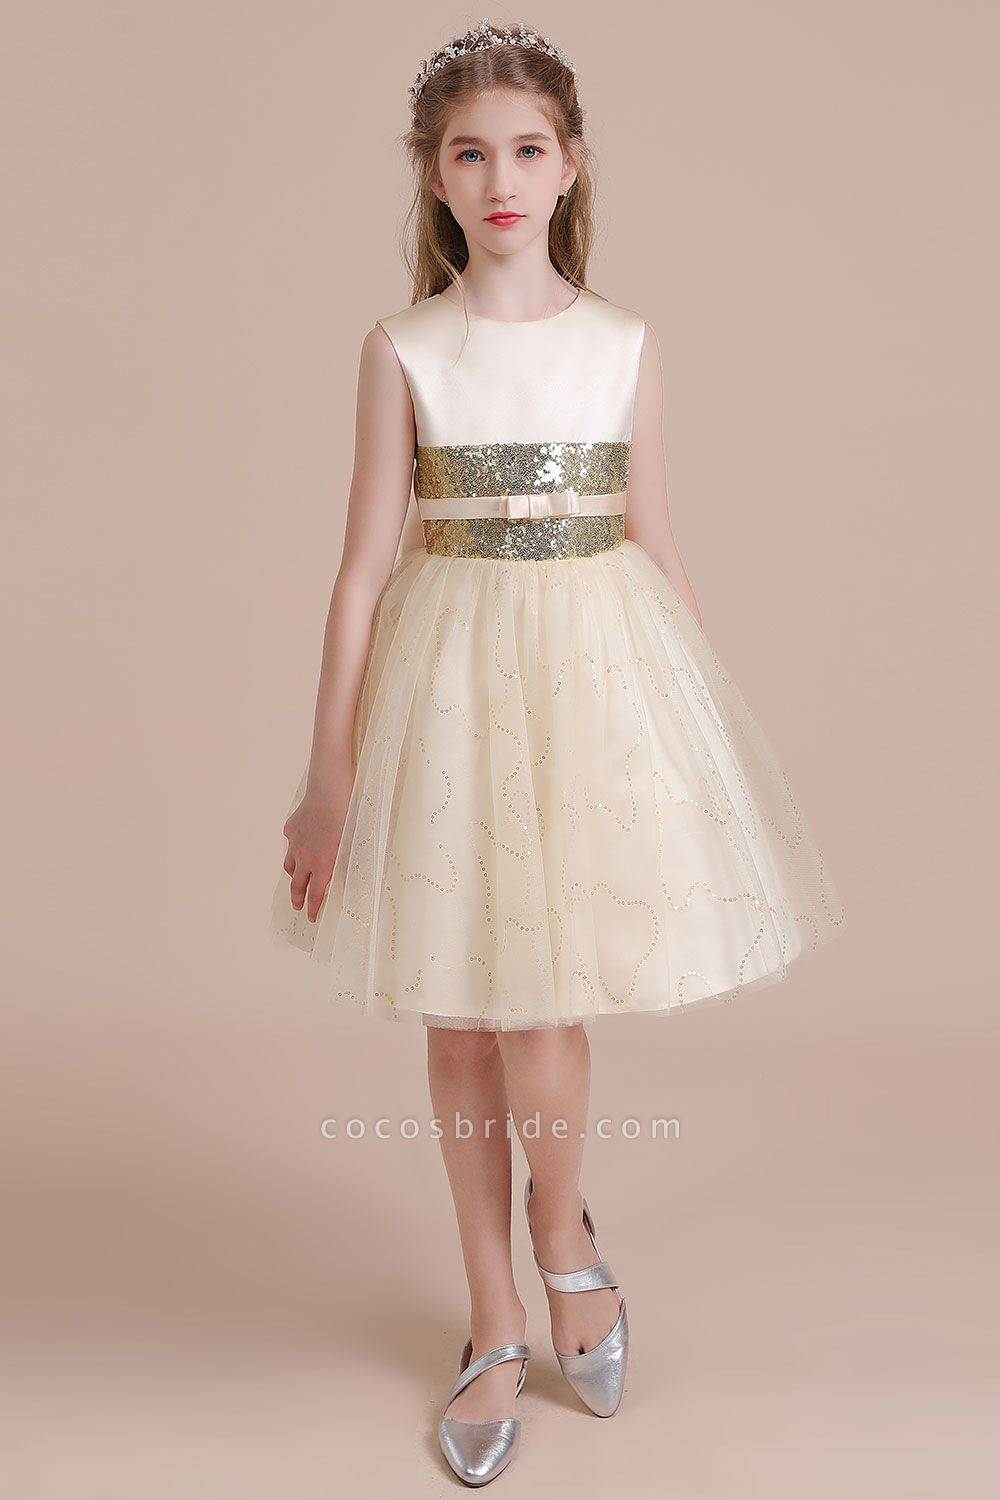 Cute Sequins Tulle A-line Flower Girl Dress